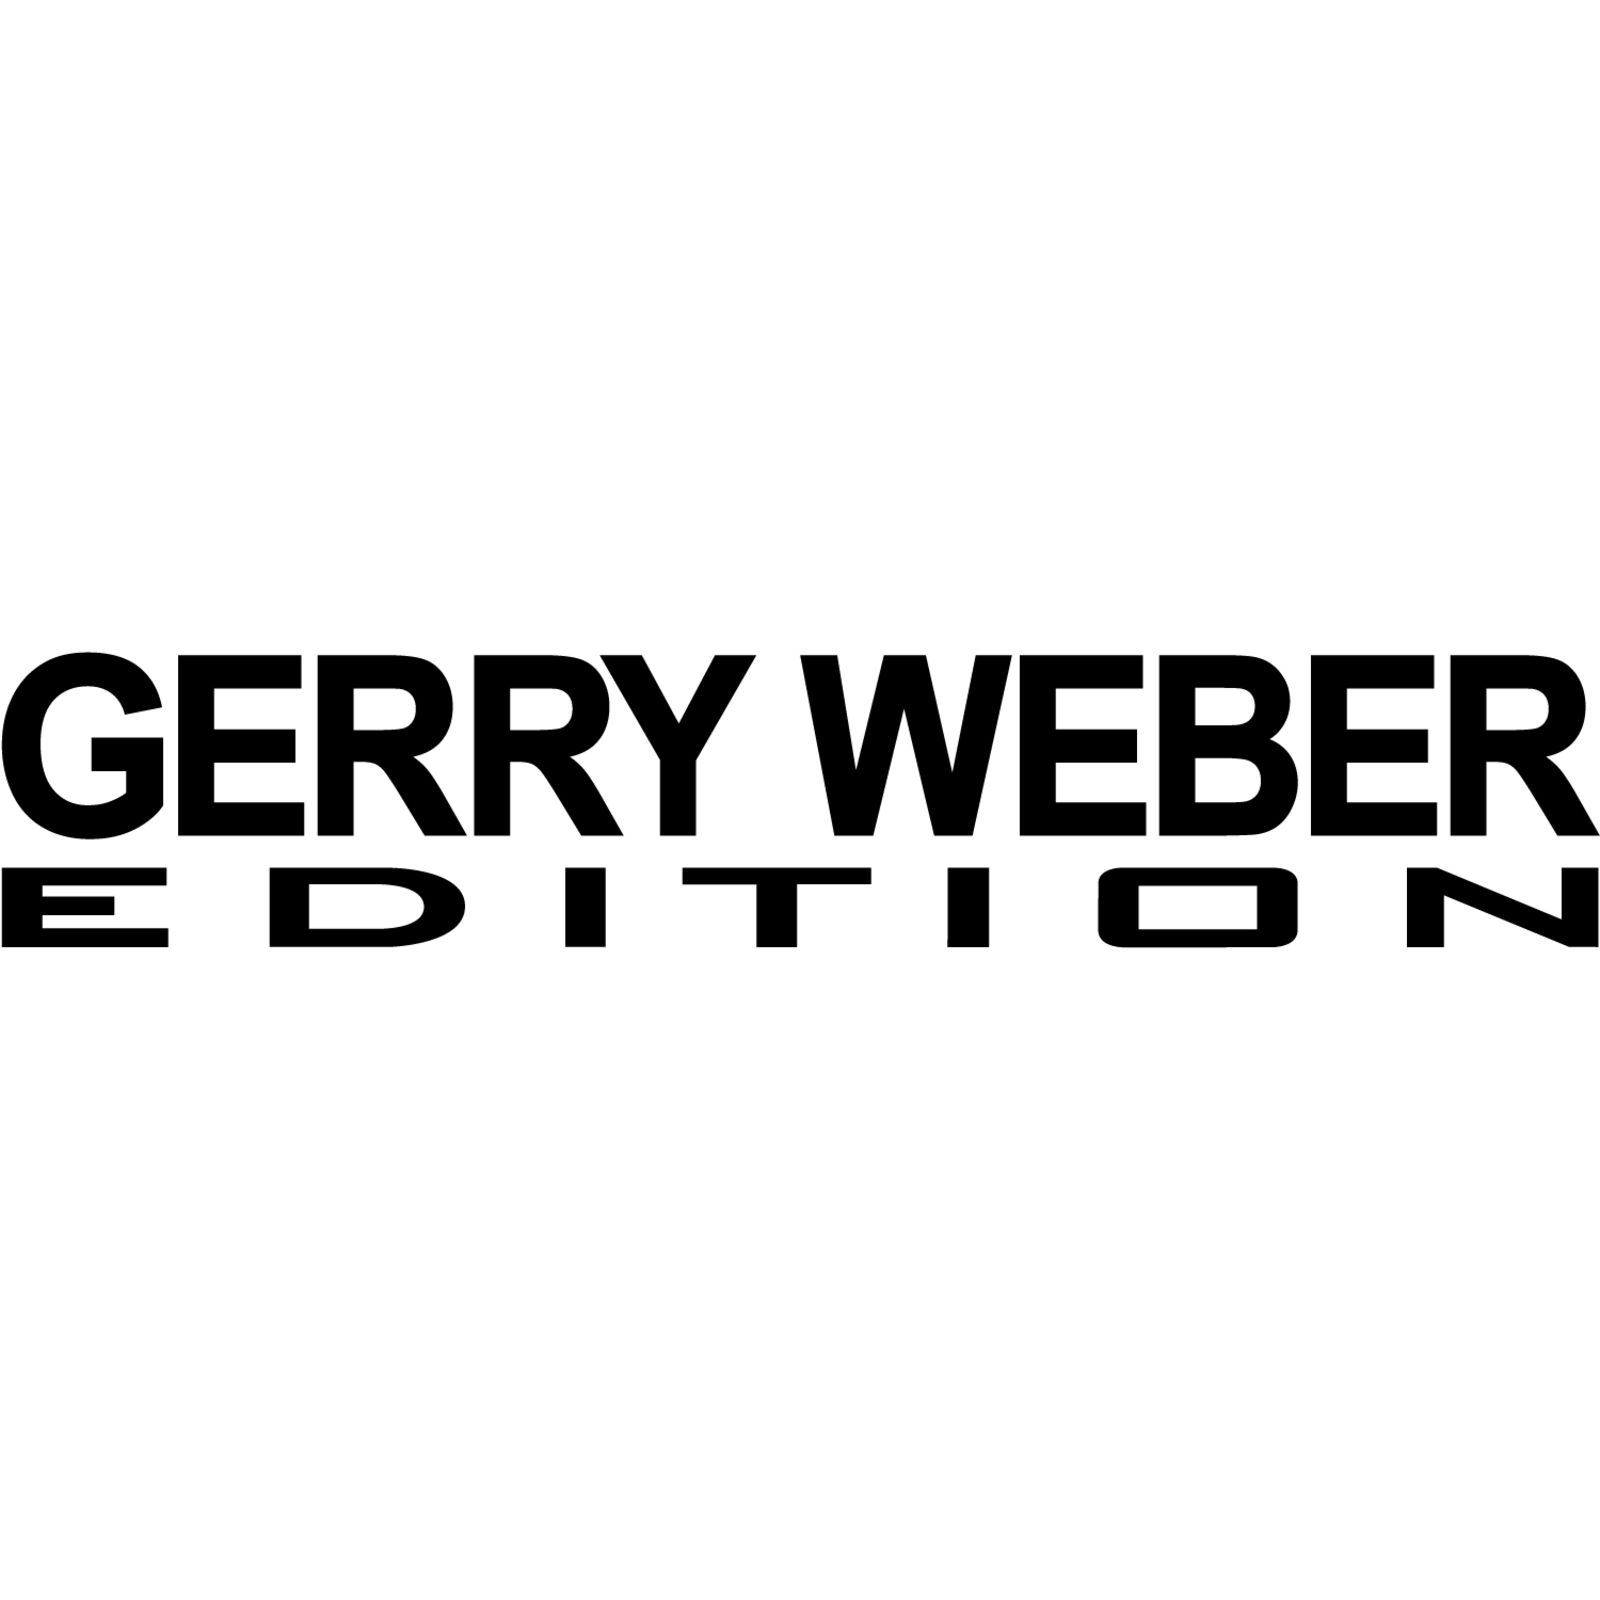 GERRY WEBER EDITION (Bild 1)